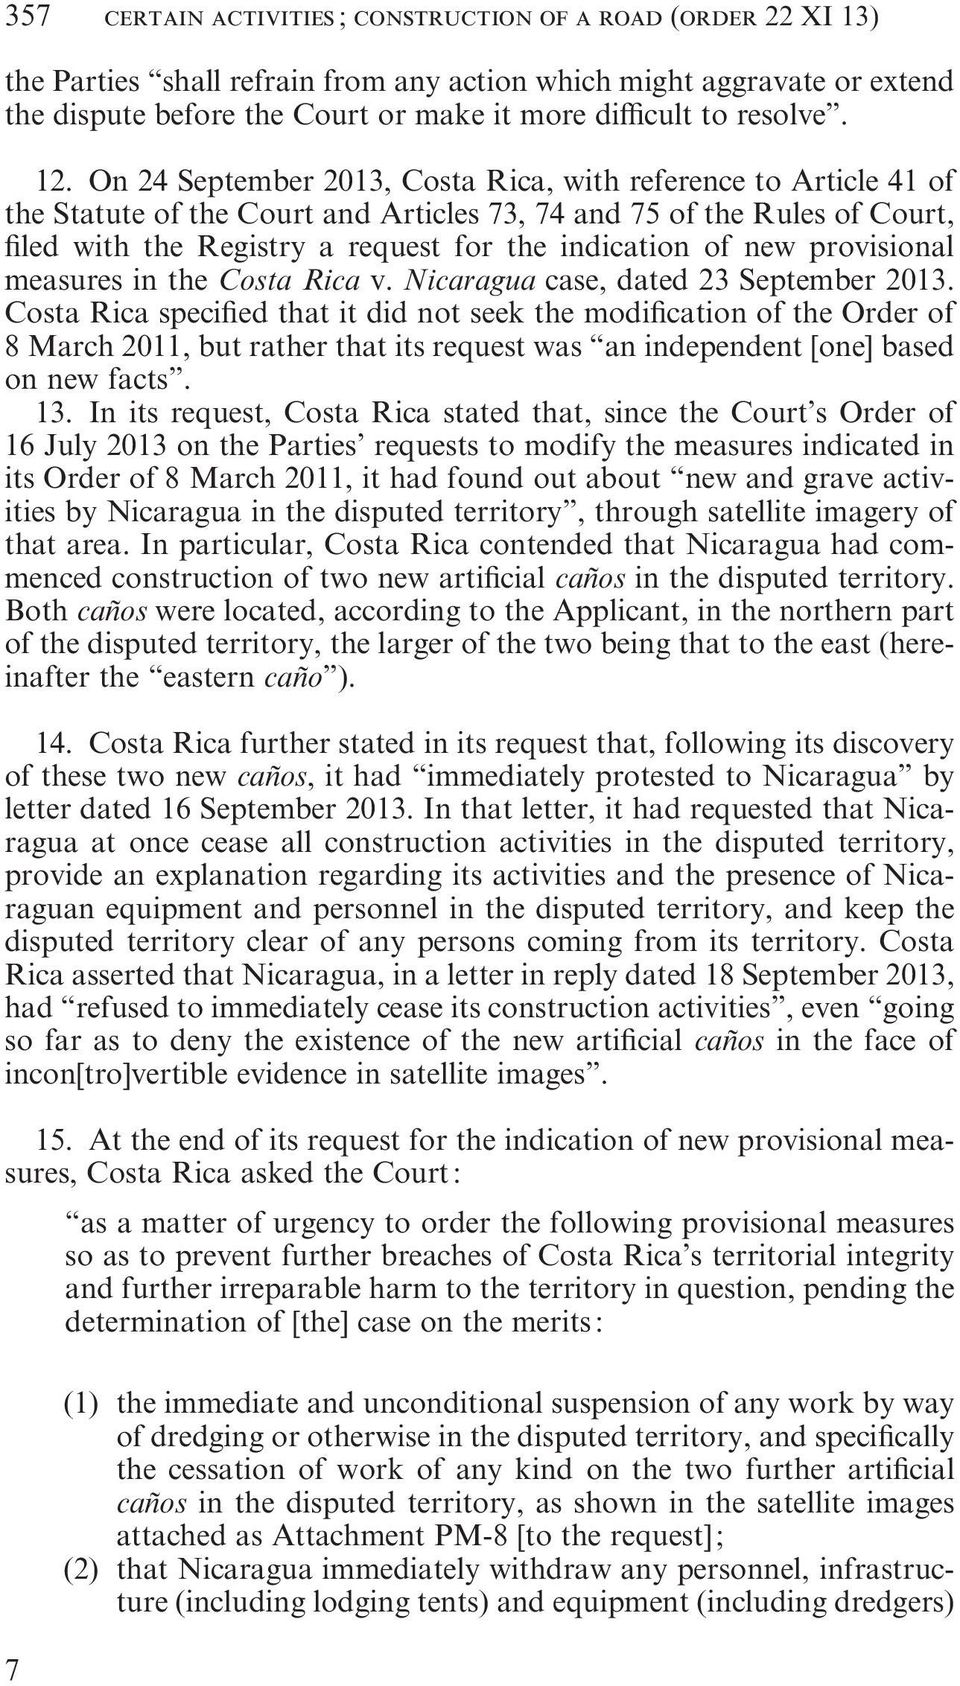 On 24 September 2013, Costa Rica, with reference to Article 41 of the Statute of the Court and Articles 73, 74 and 75 of the Rules of Court, filed with the Registry a request for the indication of